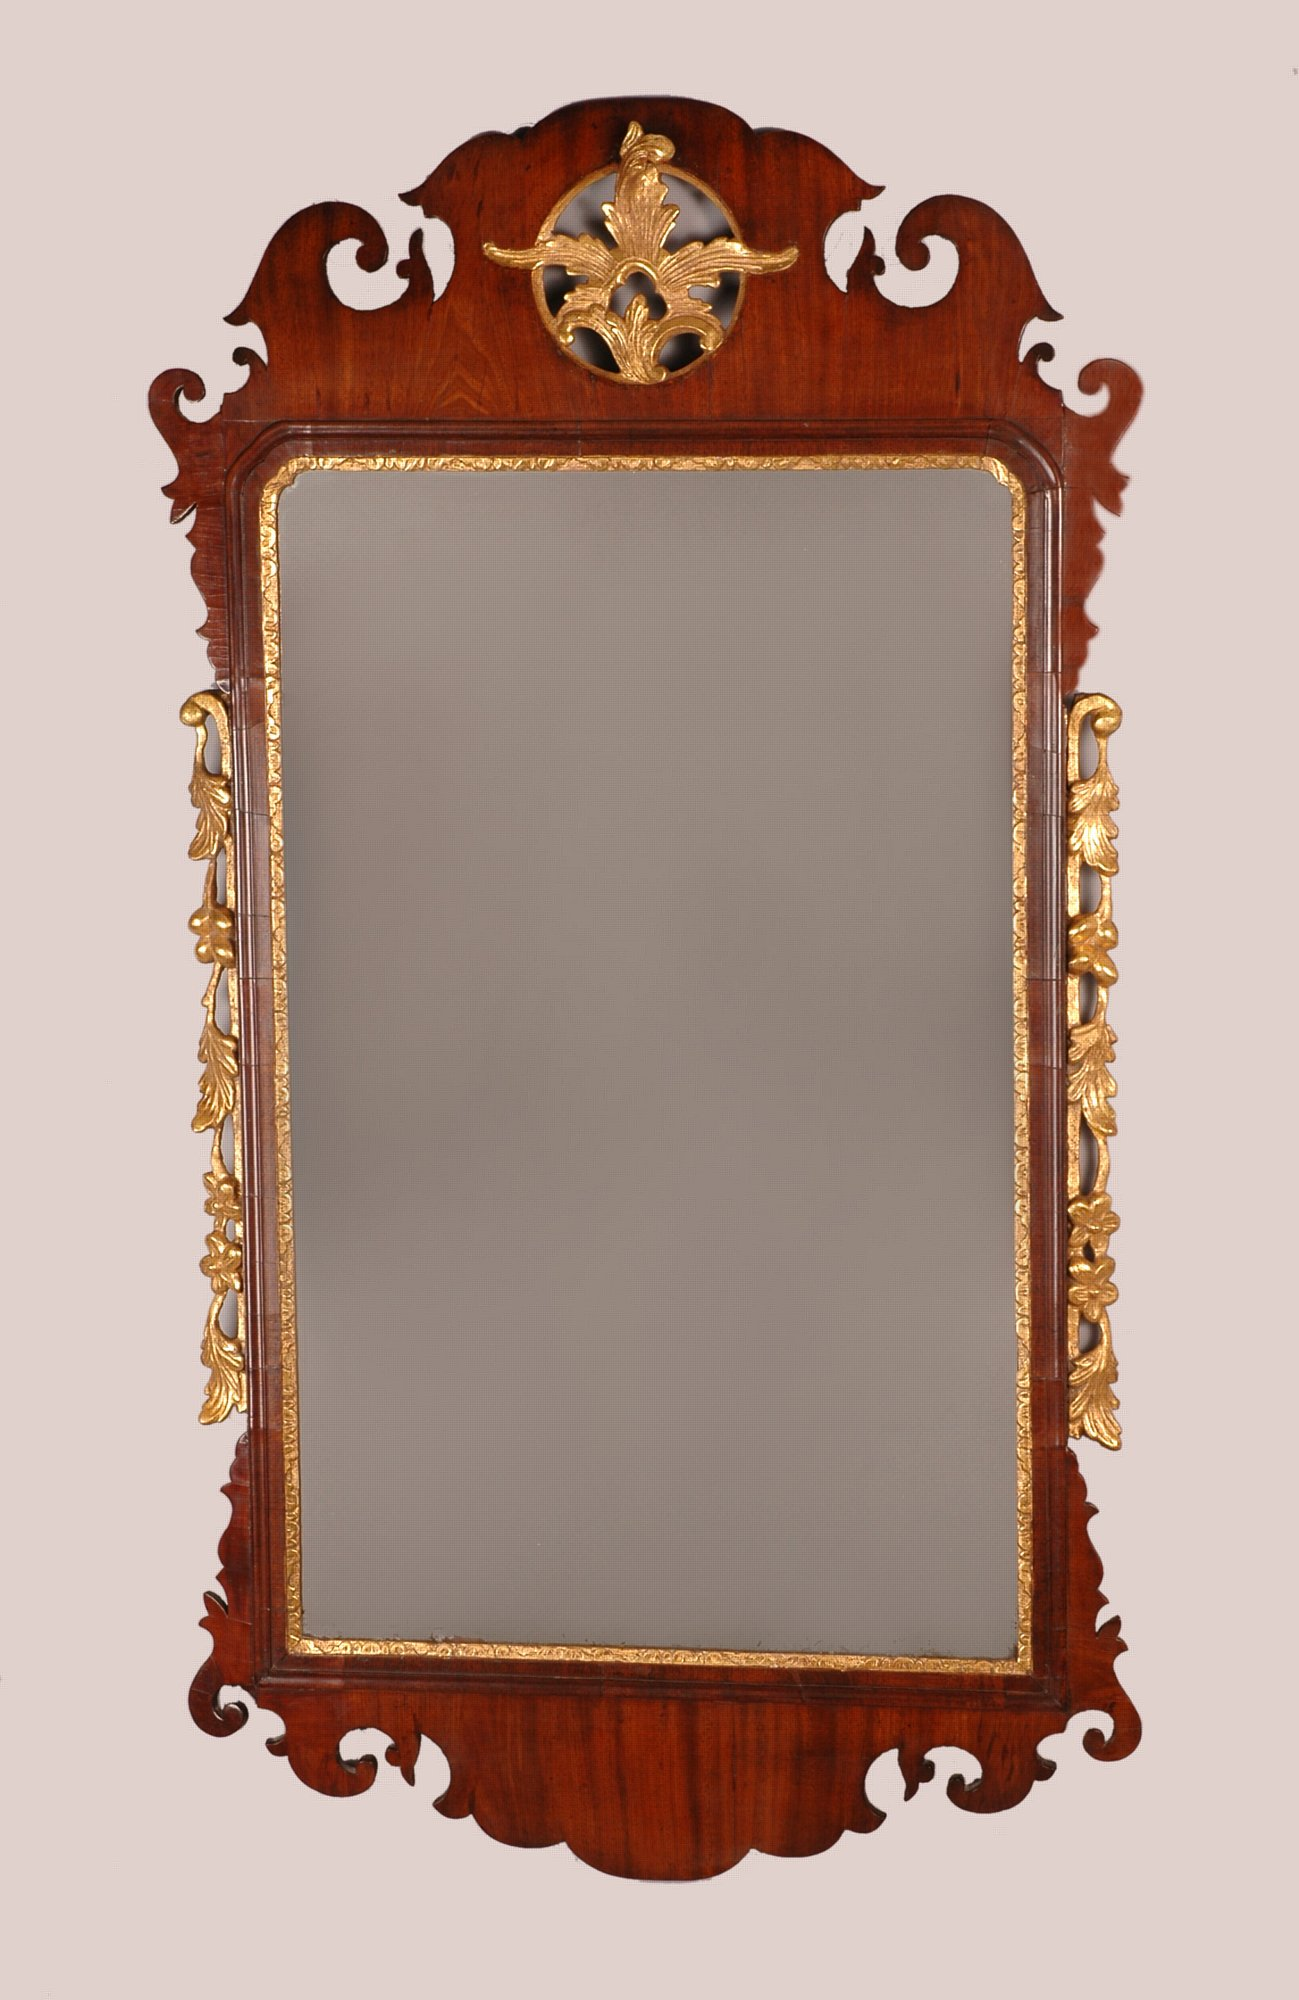 George ii mahogany and parcel gilt mirror michael pashby for What is a gilt mirror